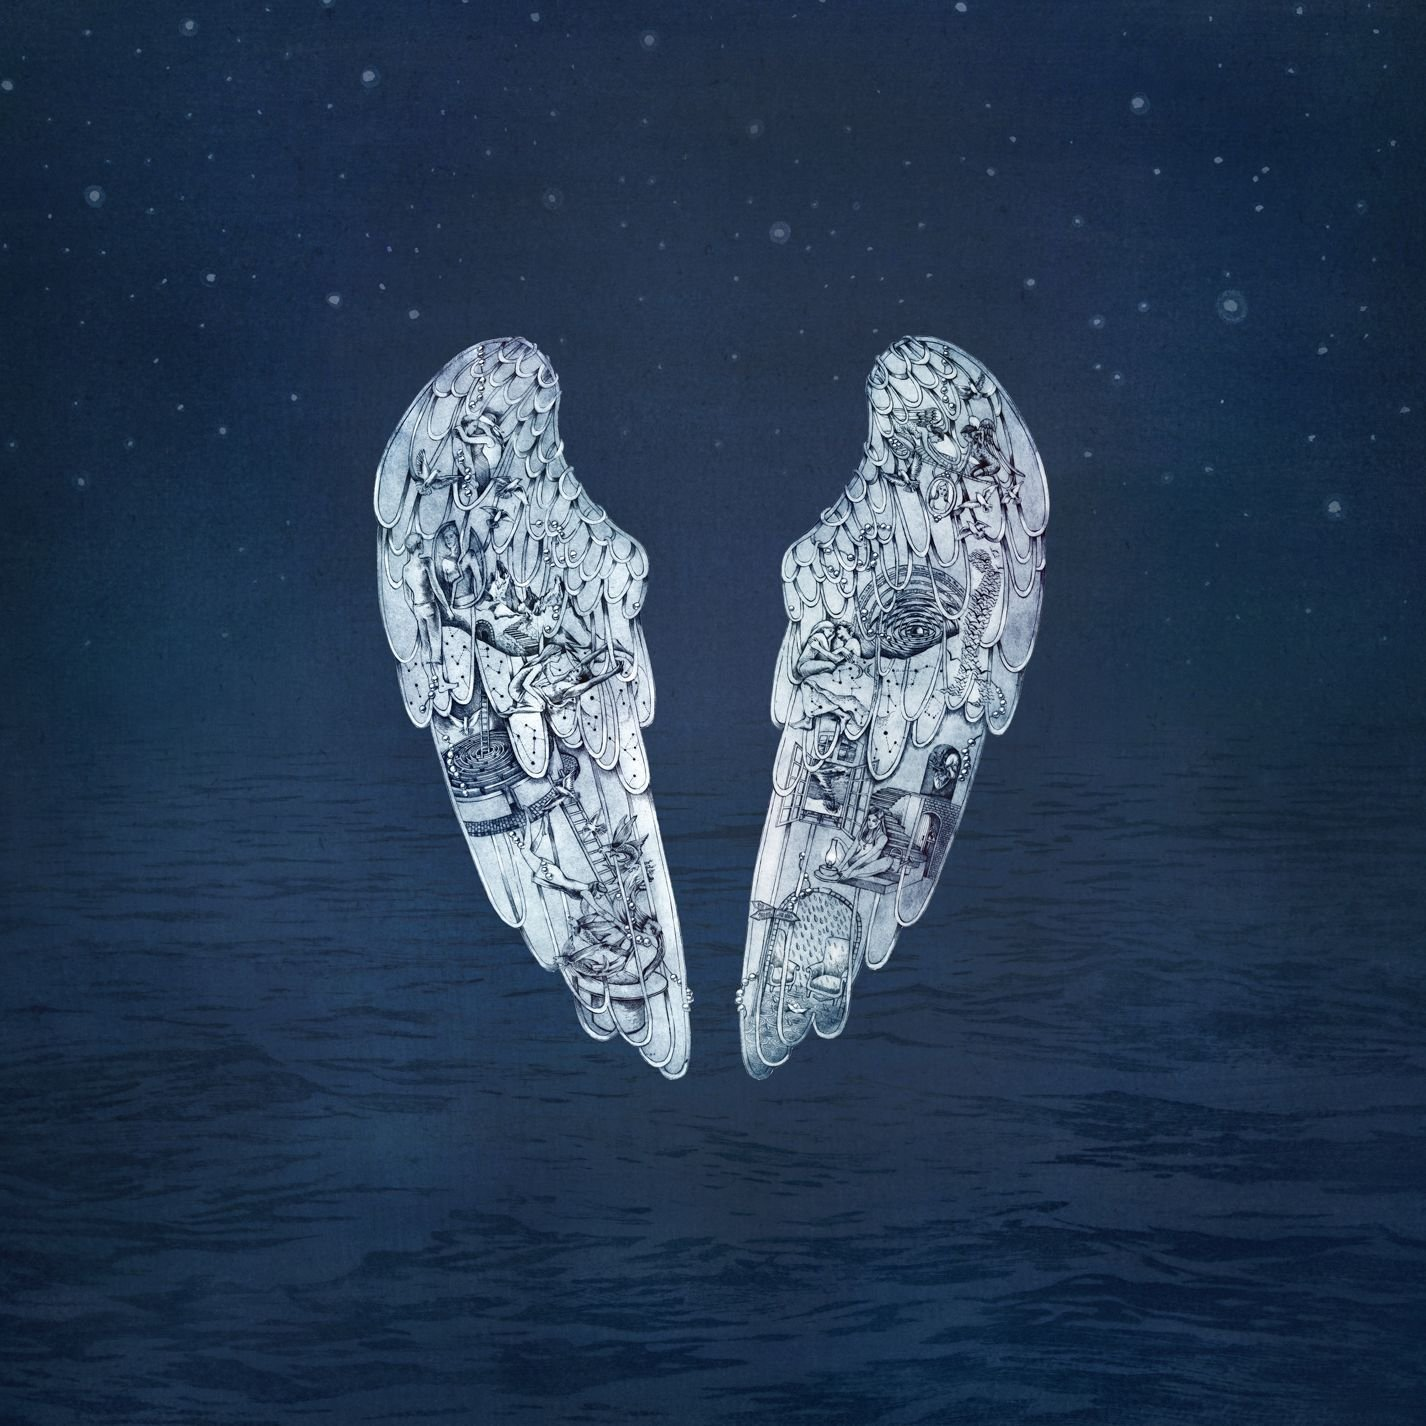 boom reviews - Ghost Stories by Coldplay album cover